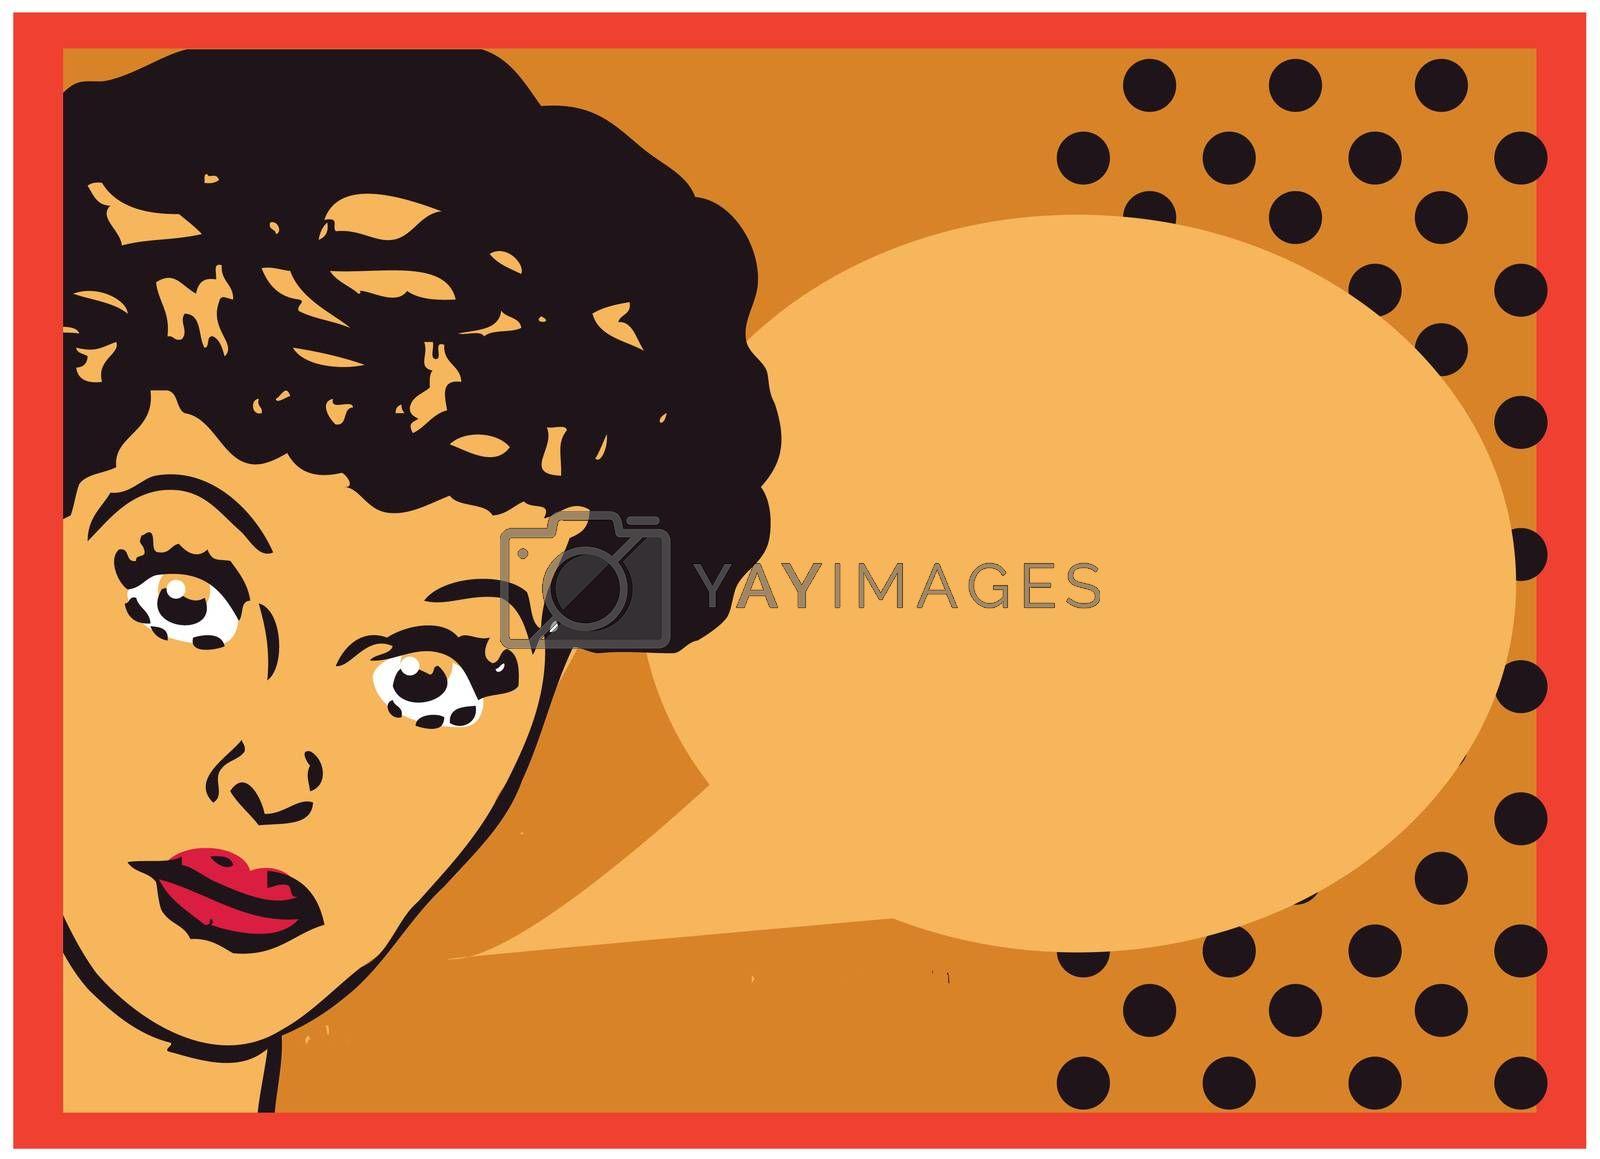 Vintage Retro Clip Art Woman Advertisement Pop Art Girl Talking with open eyes card or retro background